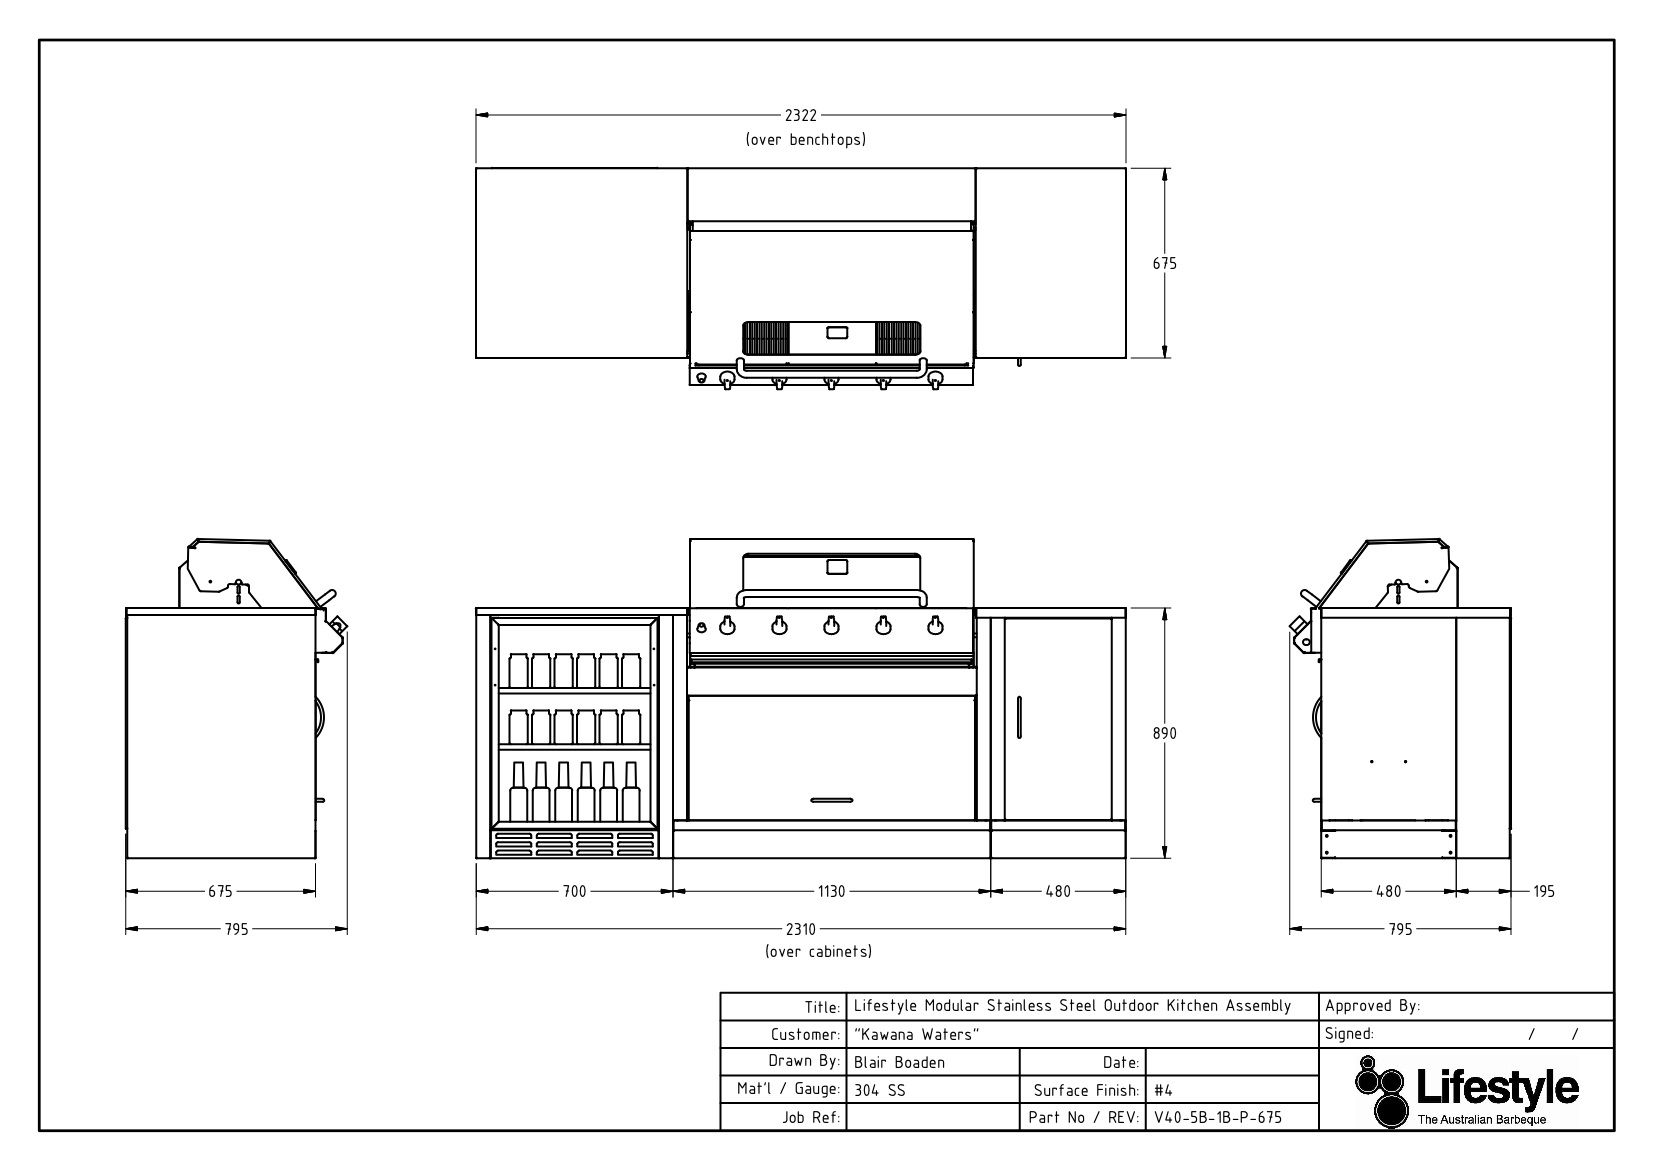 Dimensions Of Bbq Modular Outdoor Kitchens Outdoor Bbq Area Outdoor Bbq